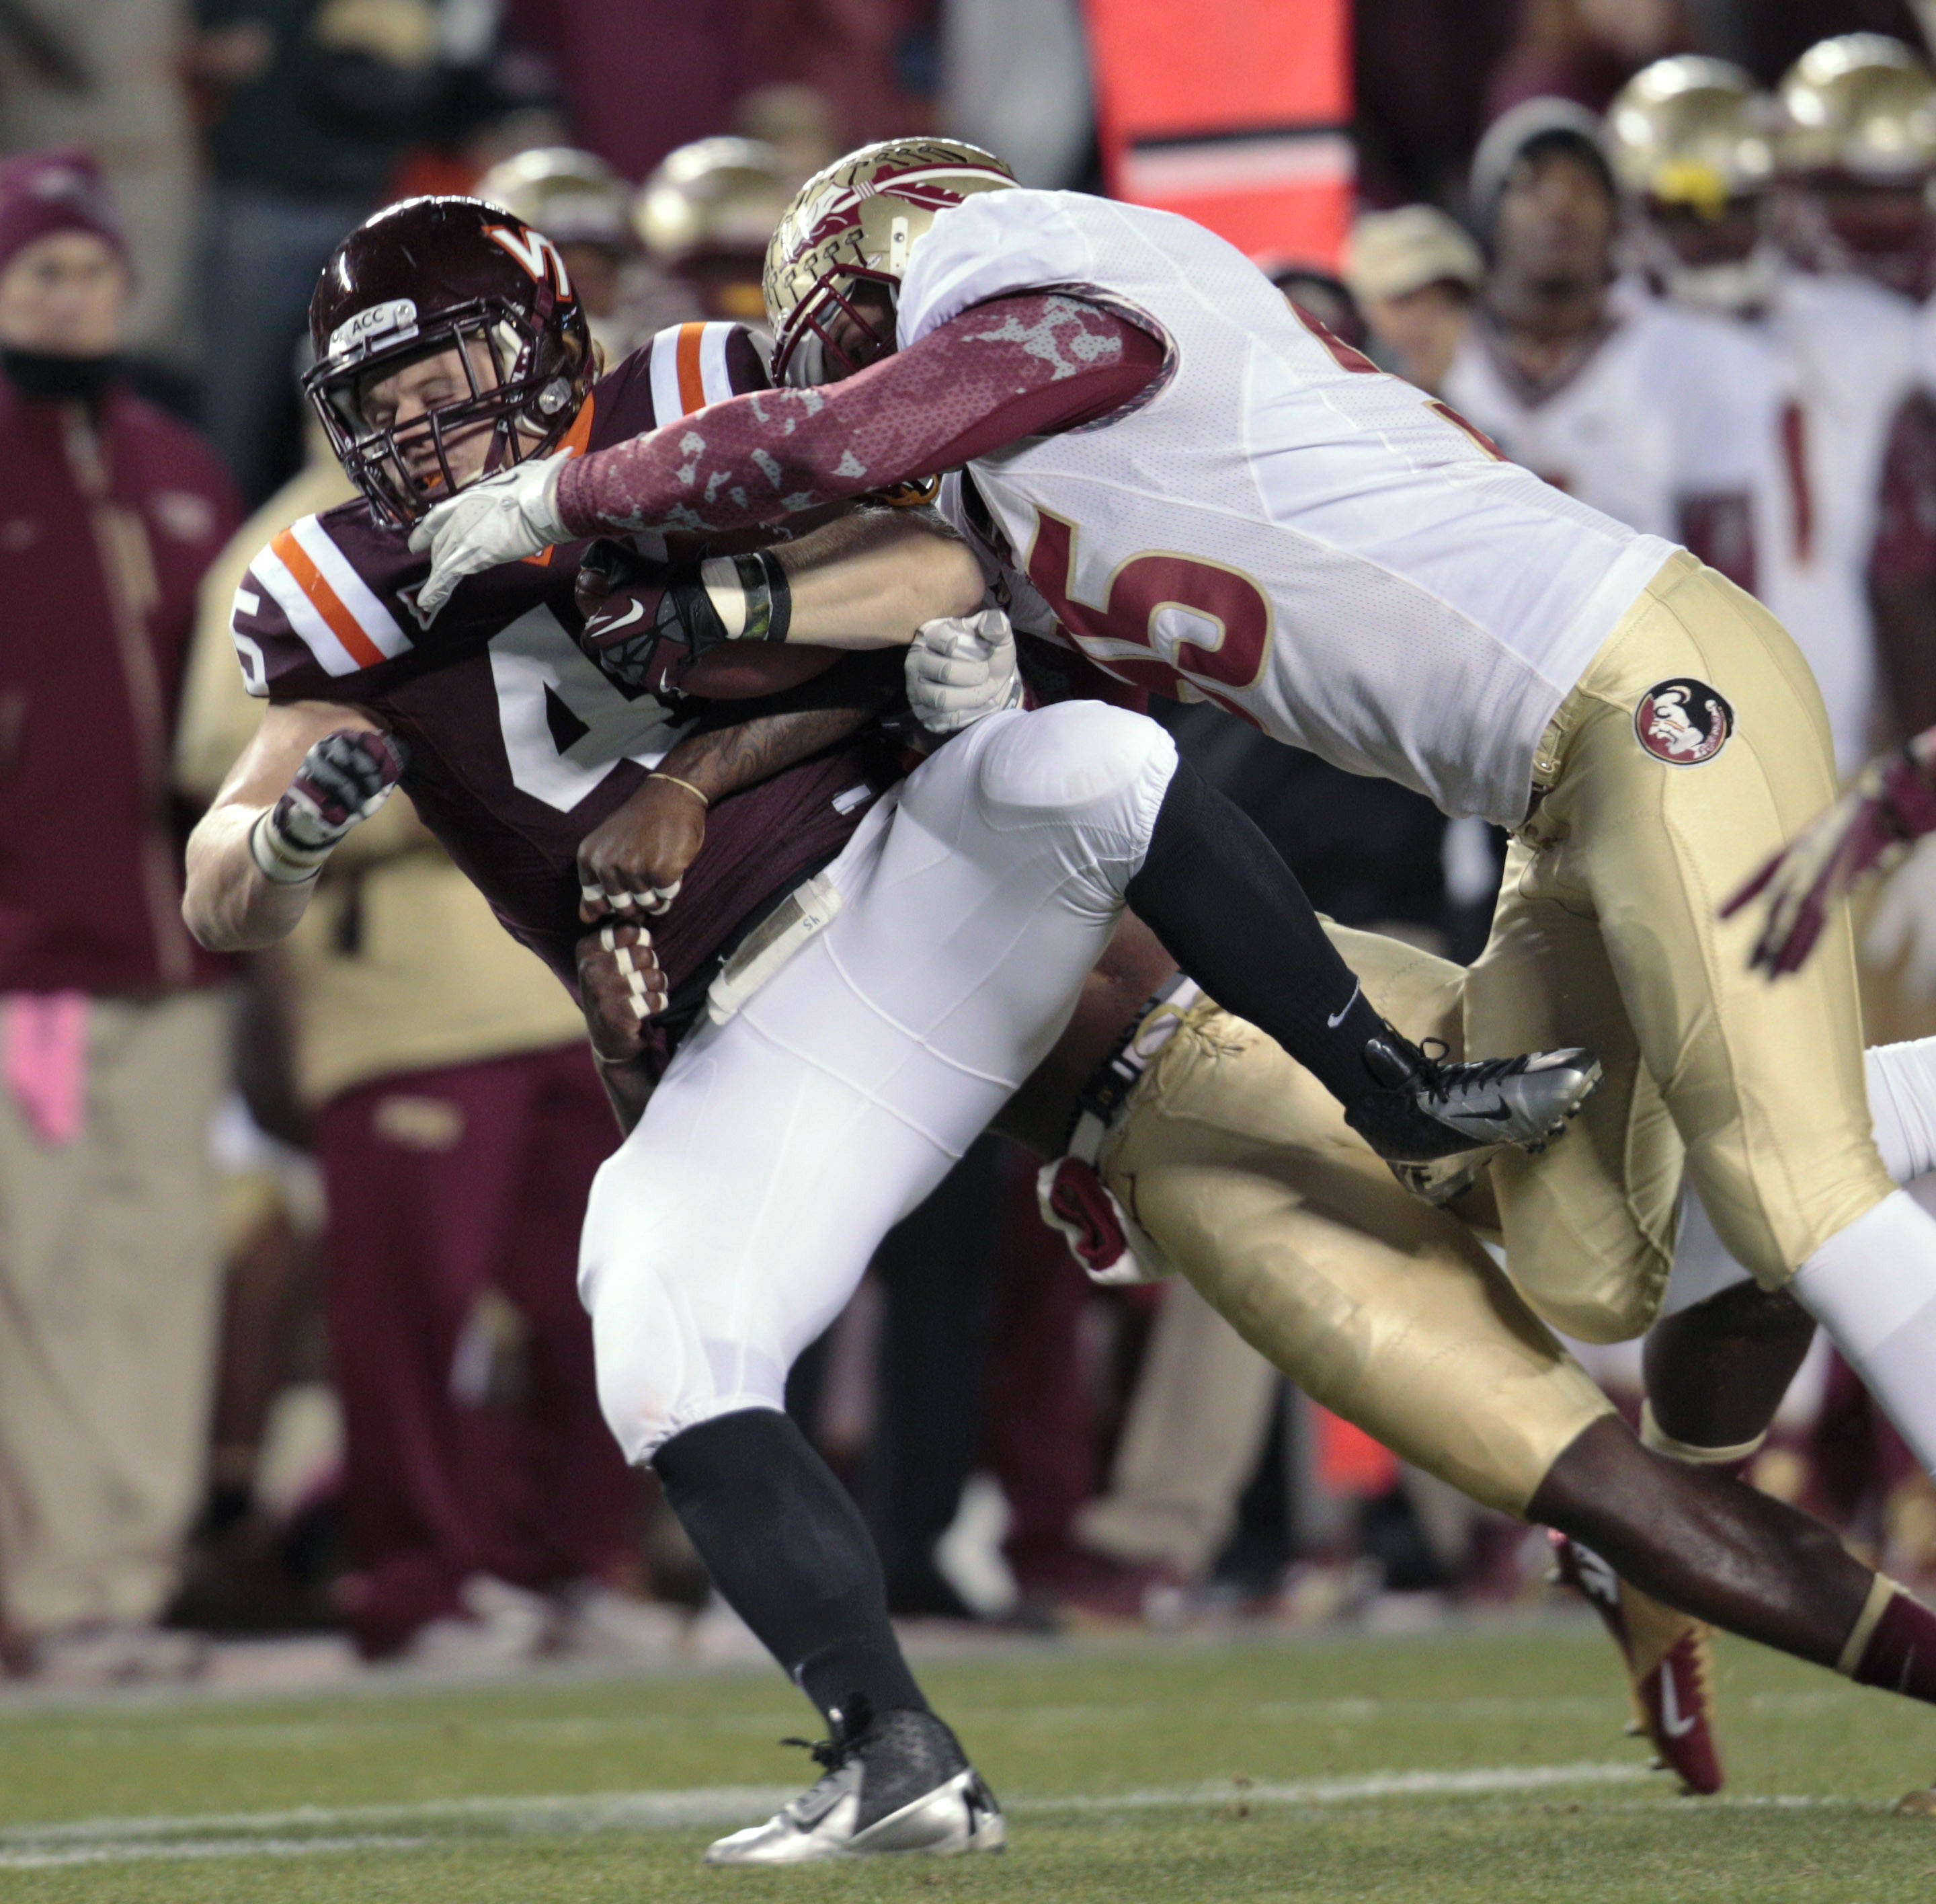 Virginia Tech fullback Joey Phillips (45) gains a few yards against Florida State defensive end Bjoern Werner (95). (AP Photo/Steve Helber)